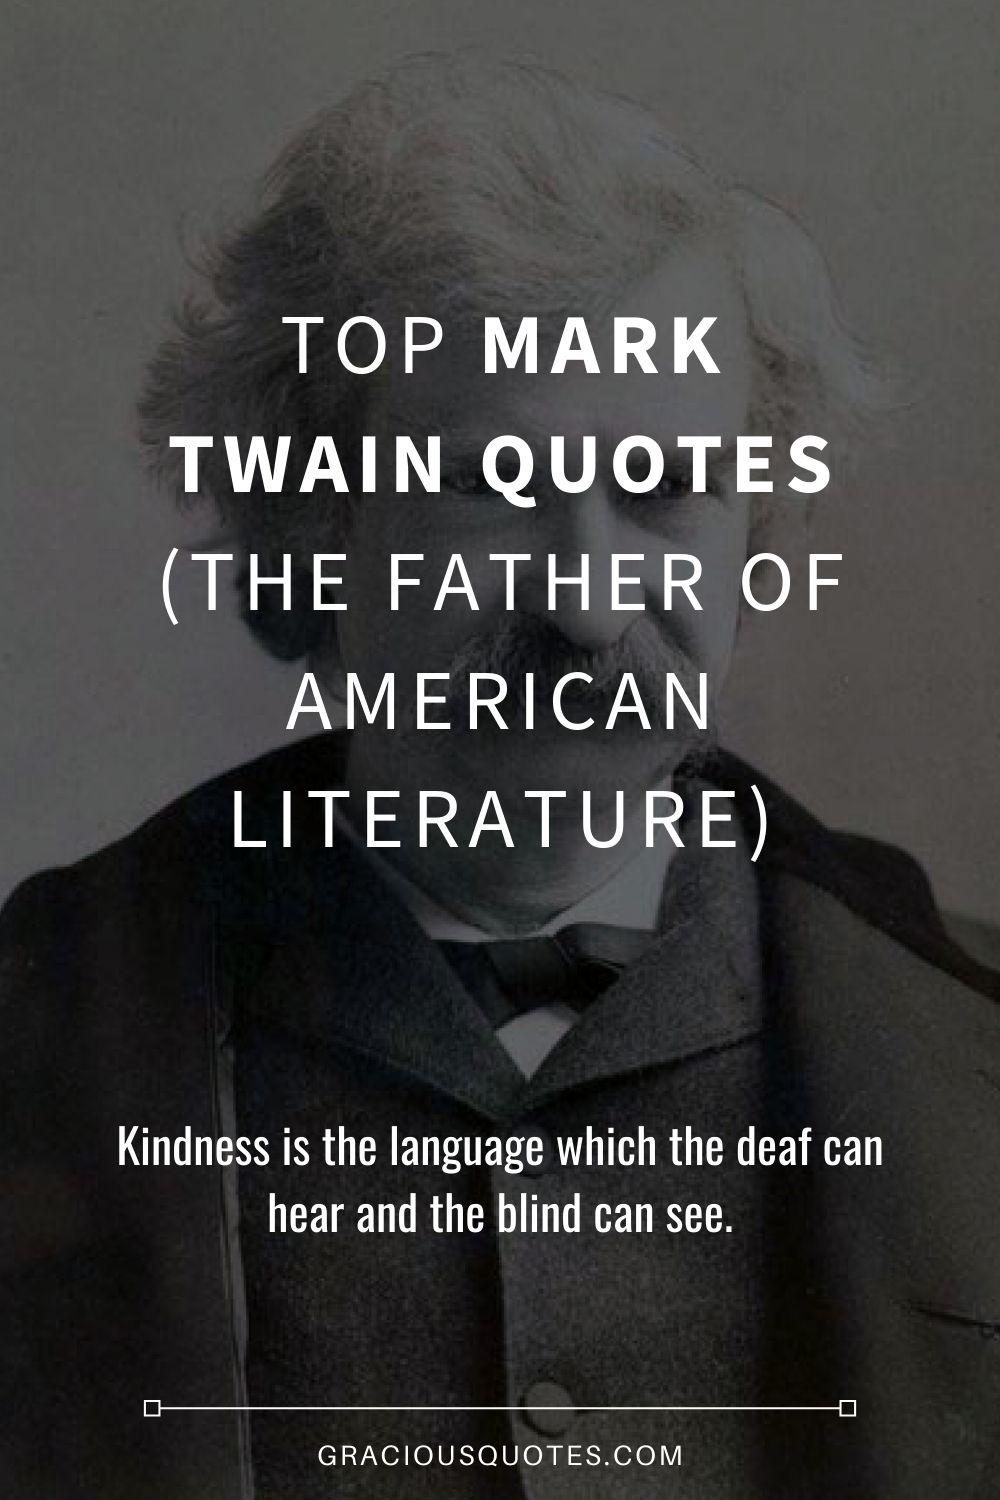 Top-81-Mark-Twain-Quotes-The-Father-of-American-Literature-Gracious-Quotes